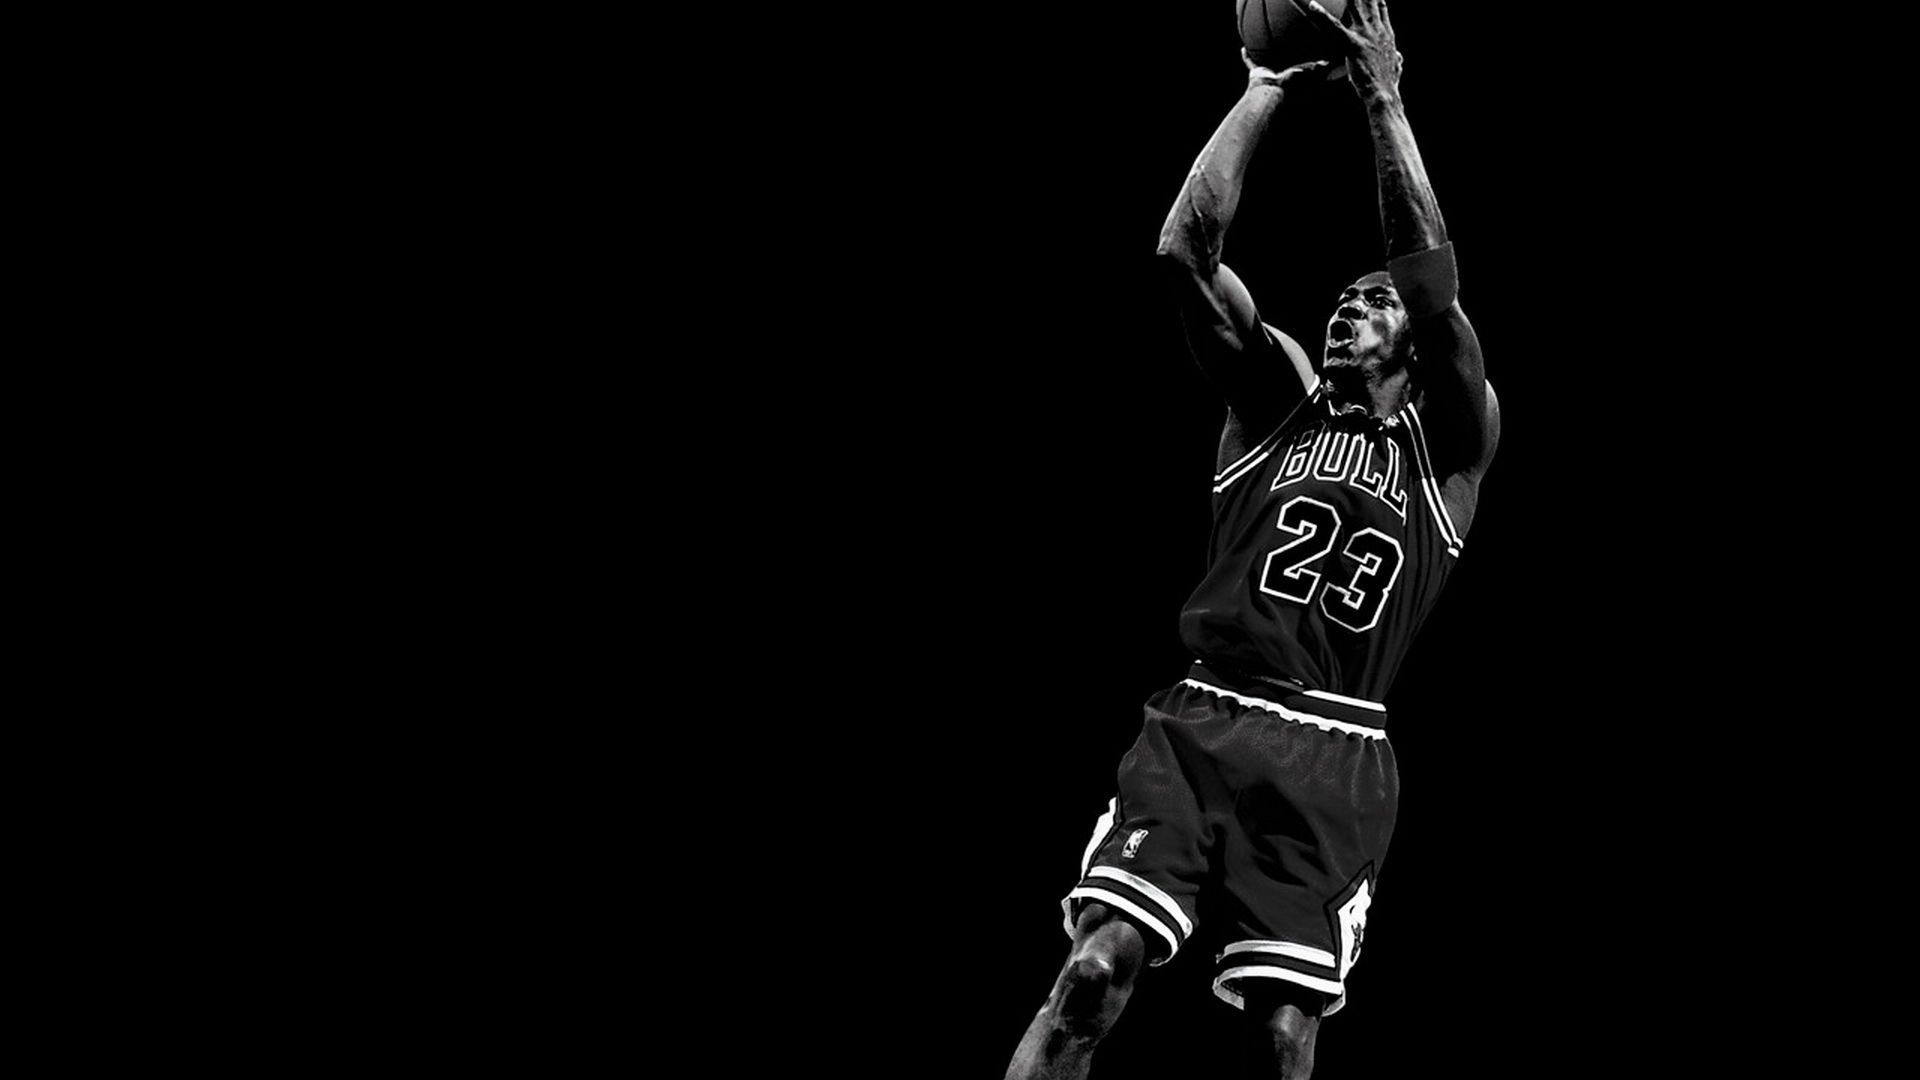 1920x1080 Michael Jordan Wallpapers HD Download Free | PixelsTalk.Net